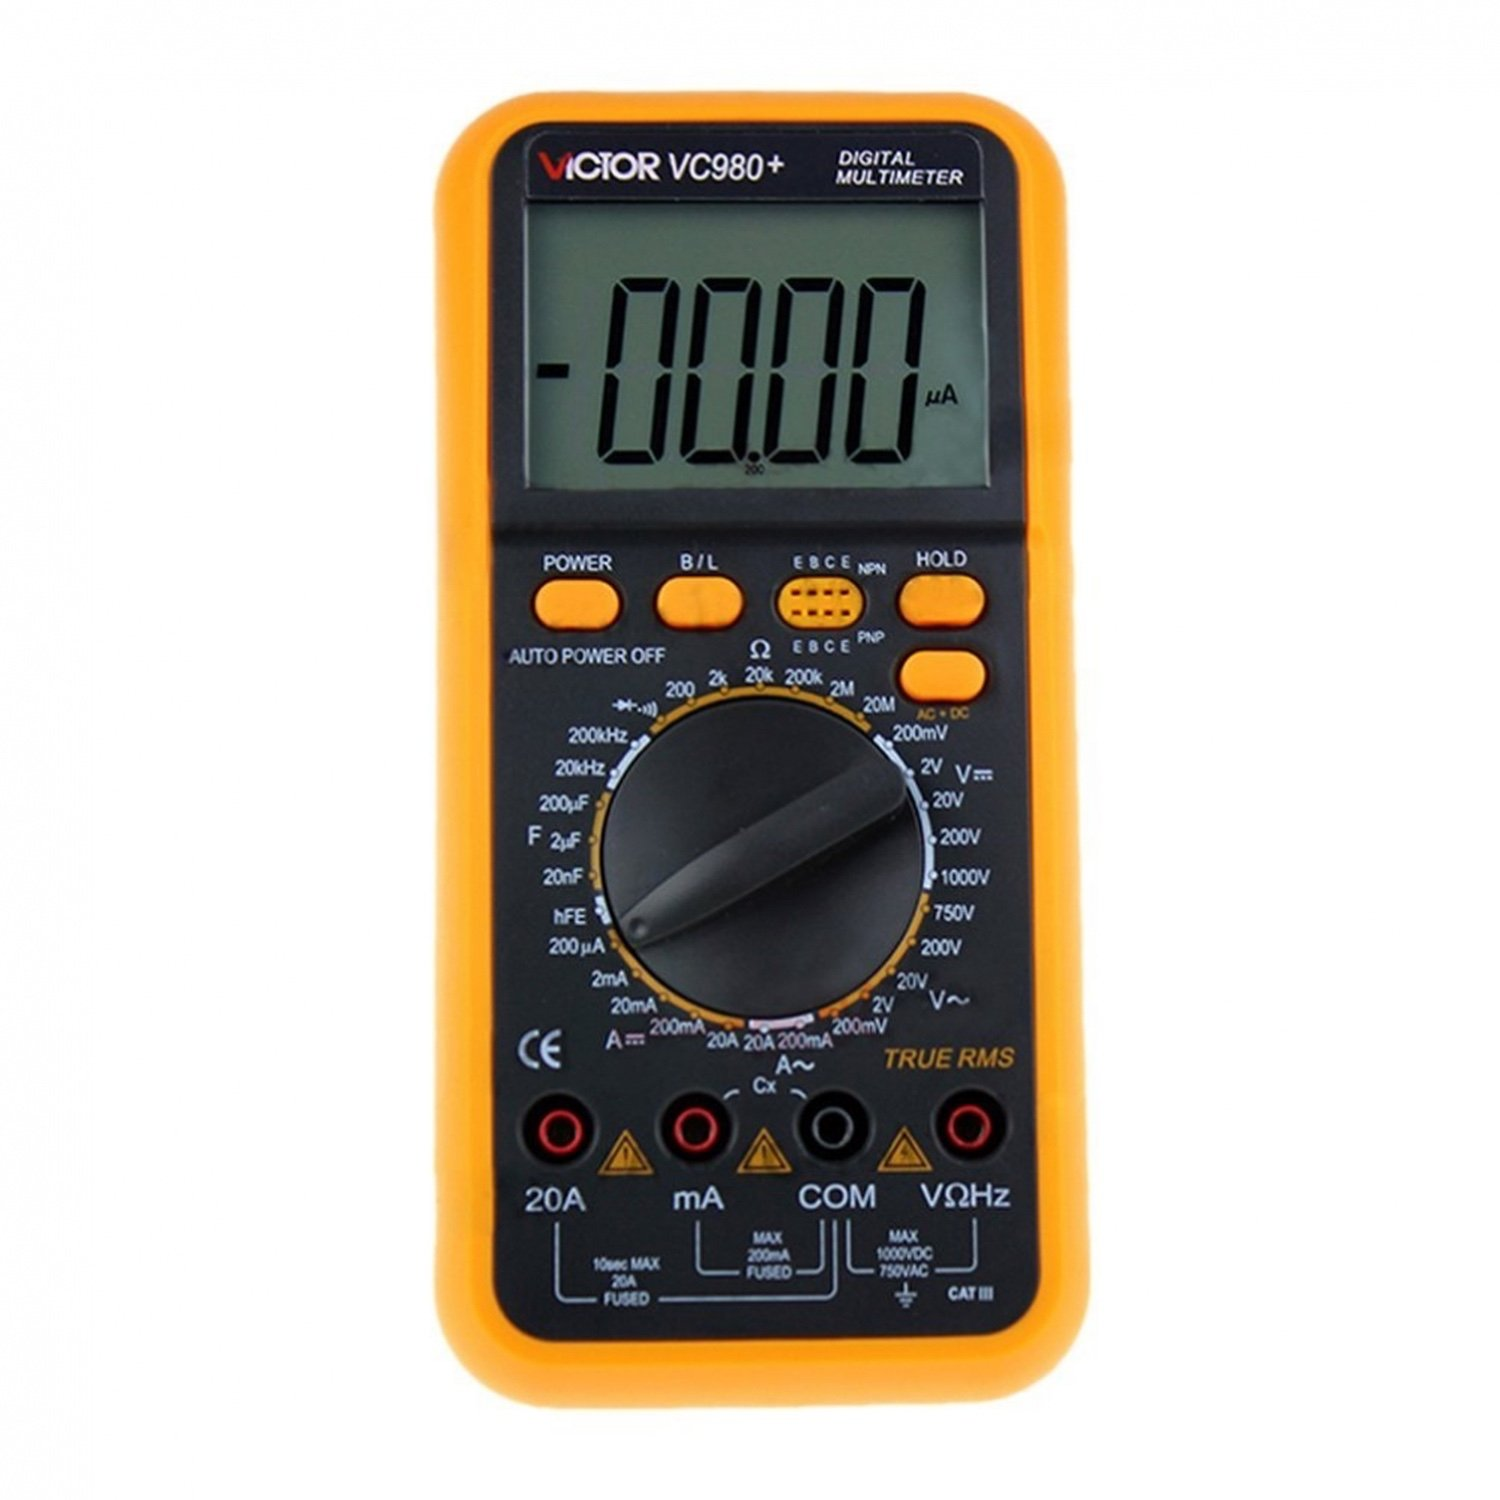 Digital TRUE RMS Multimeter VICTOR VC980 + victor vc890c digital multimeter true multimeter capacitor temperature measurement multimeter digital professional